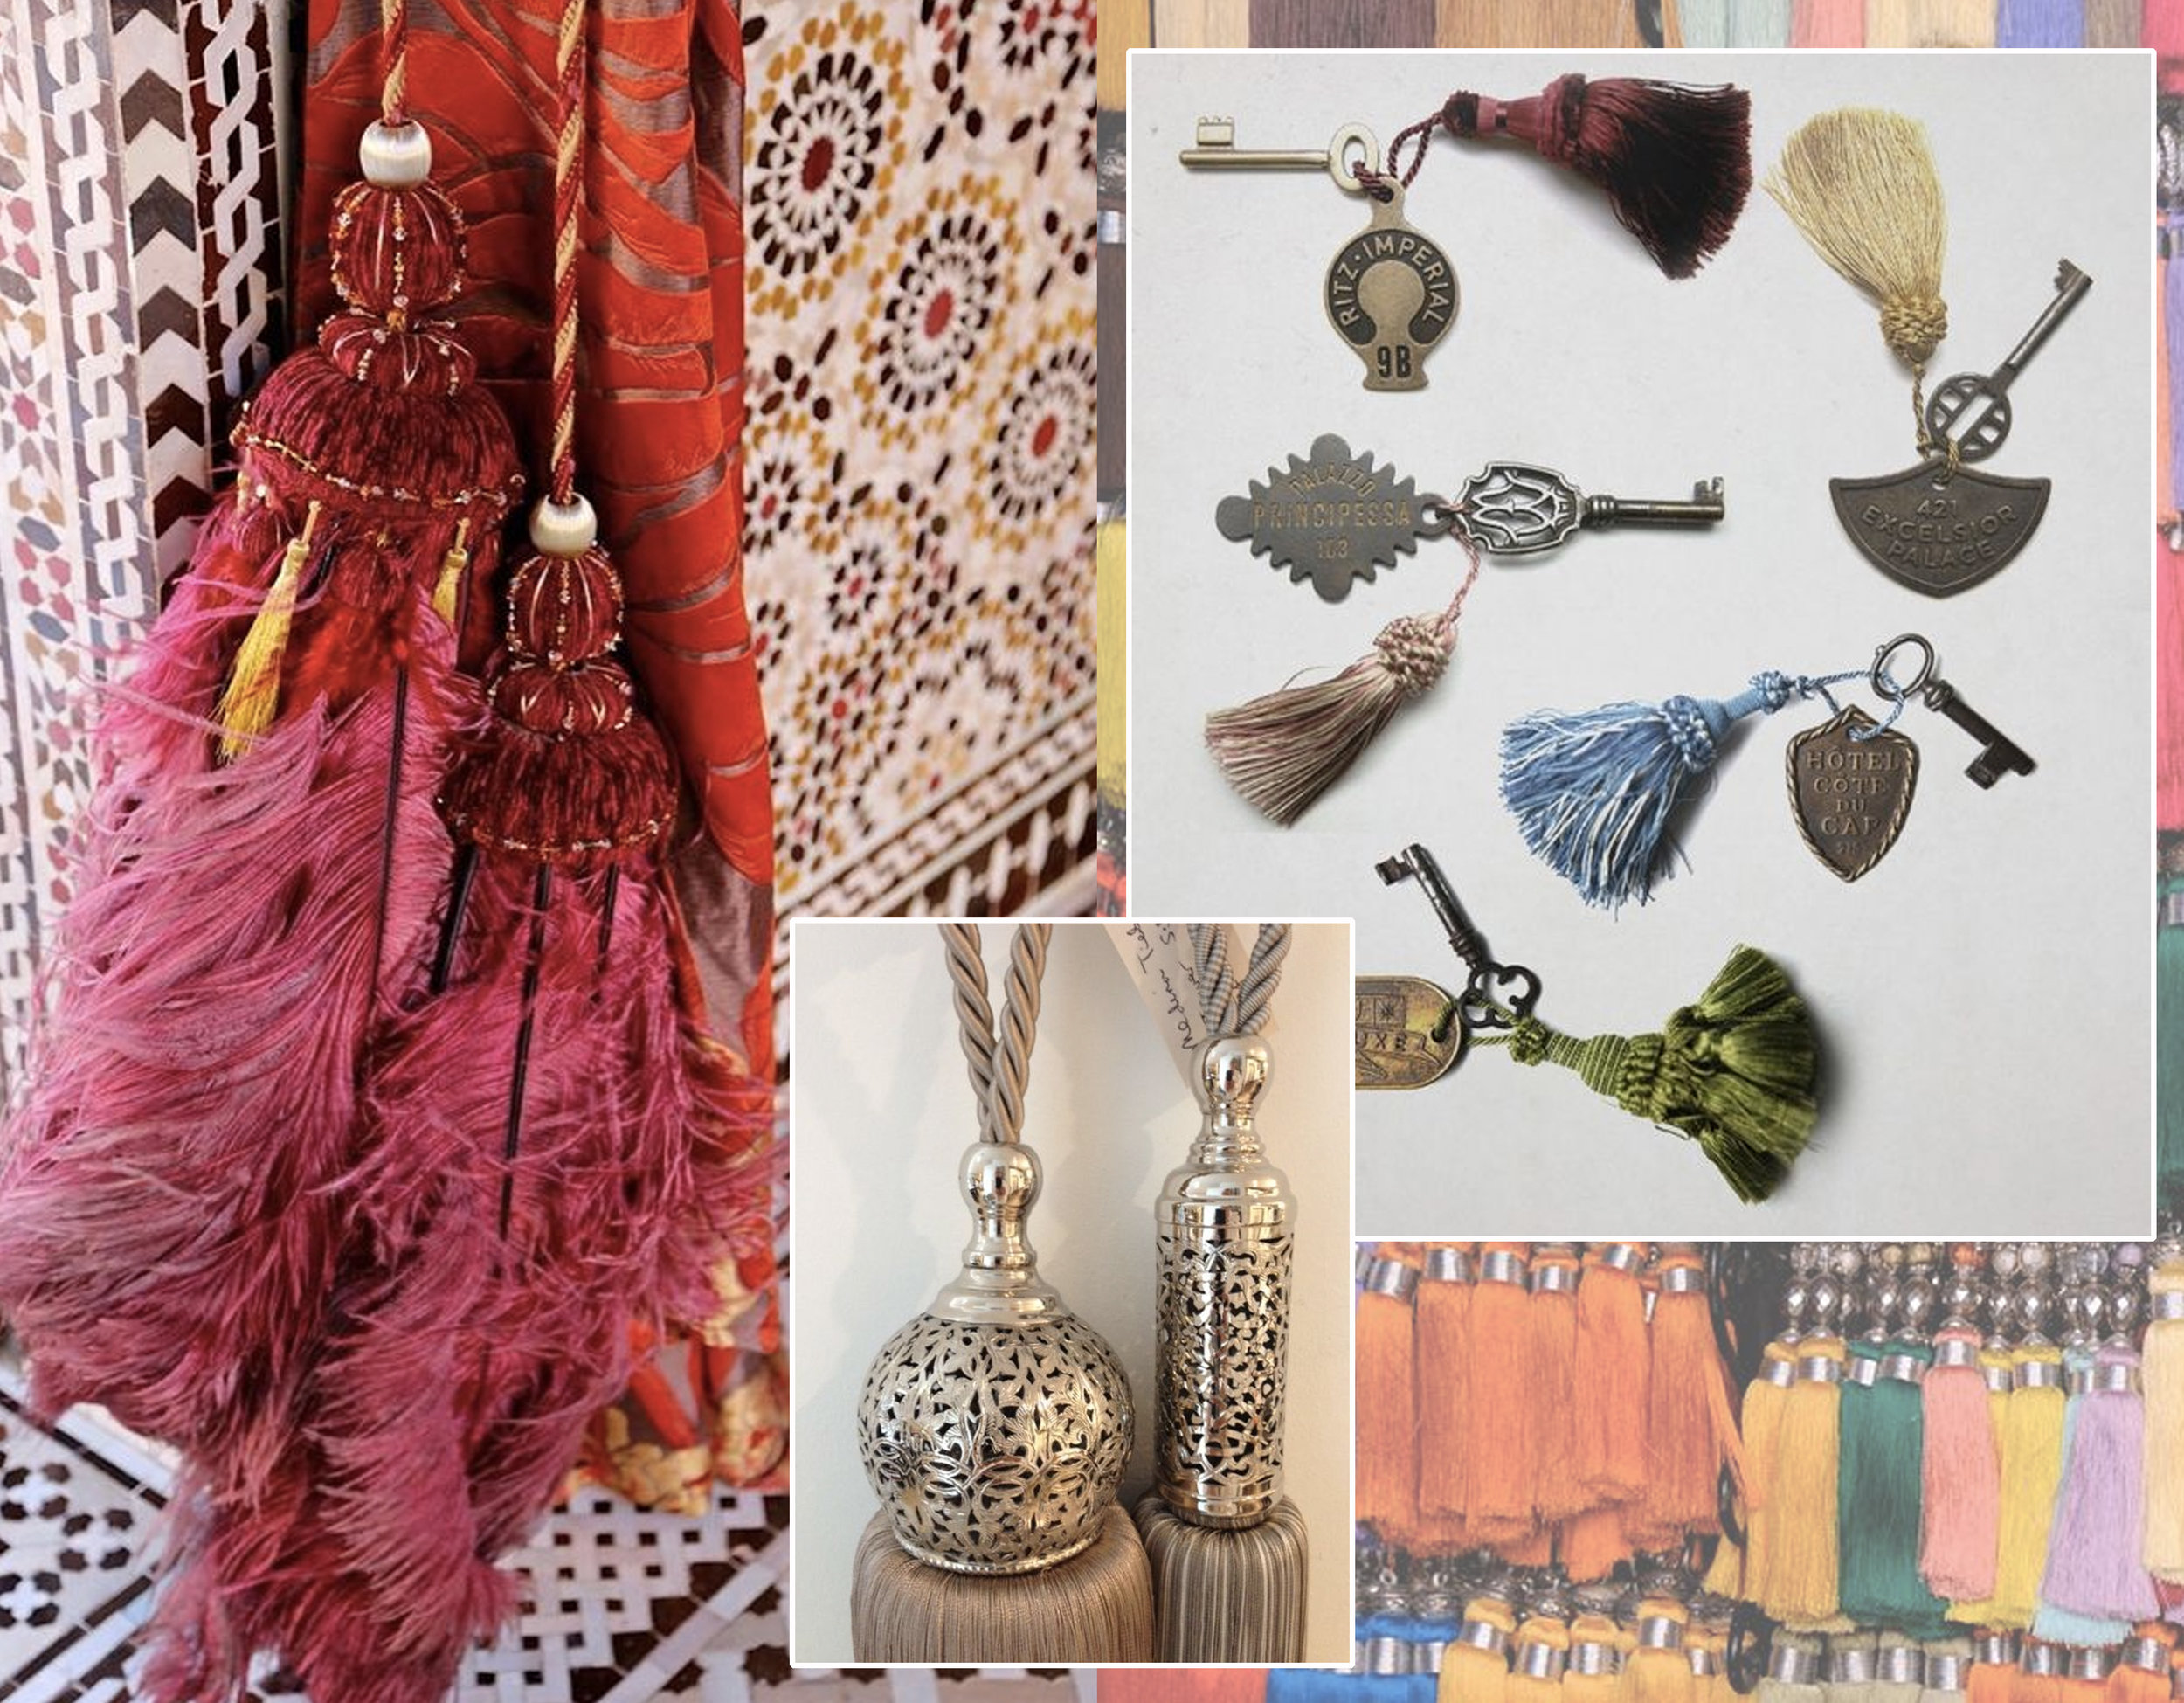 Moroccan tassel via  Slim Paley  - small key tassel via  Fritzroy